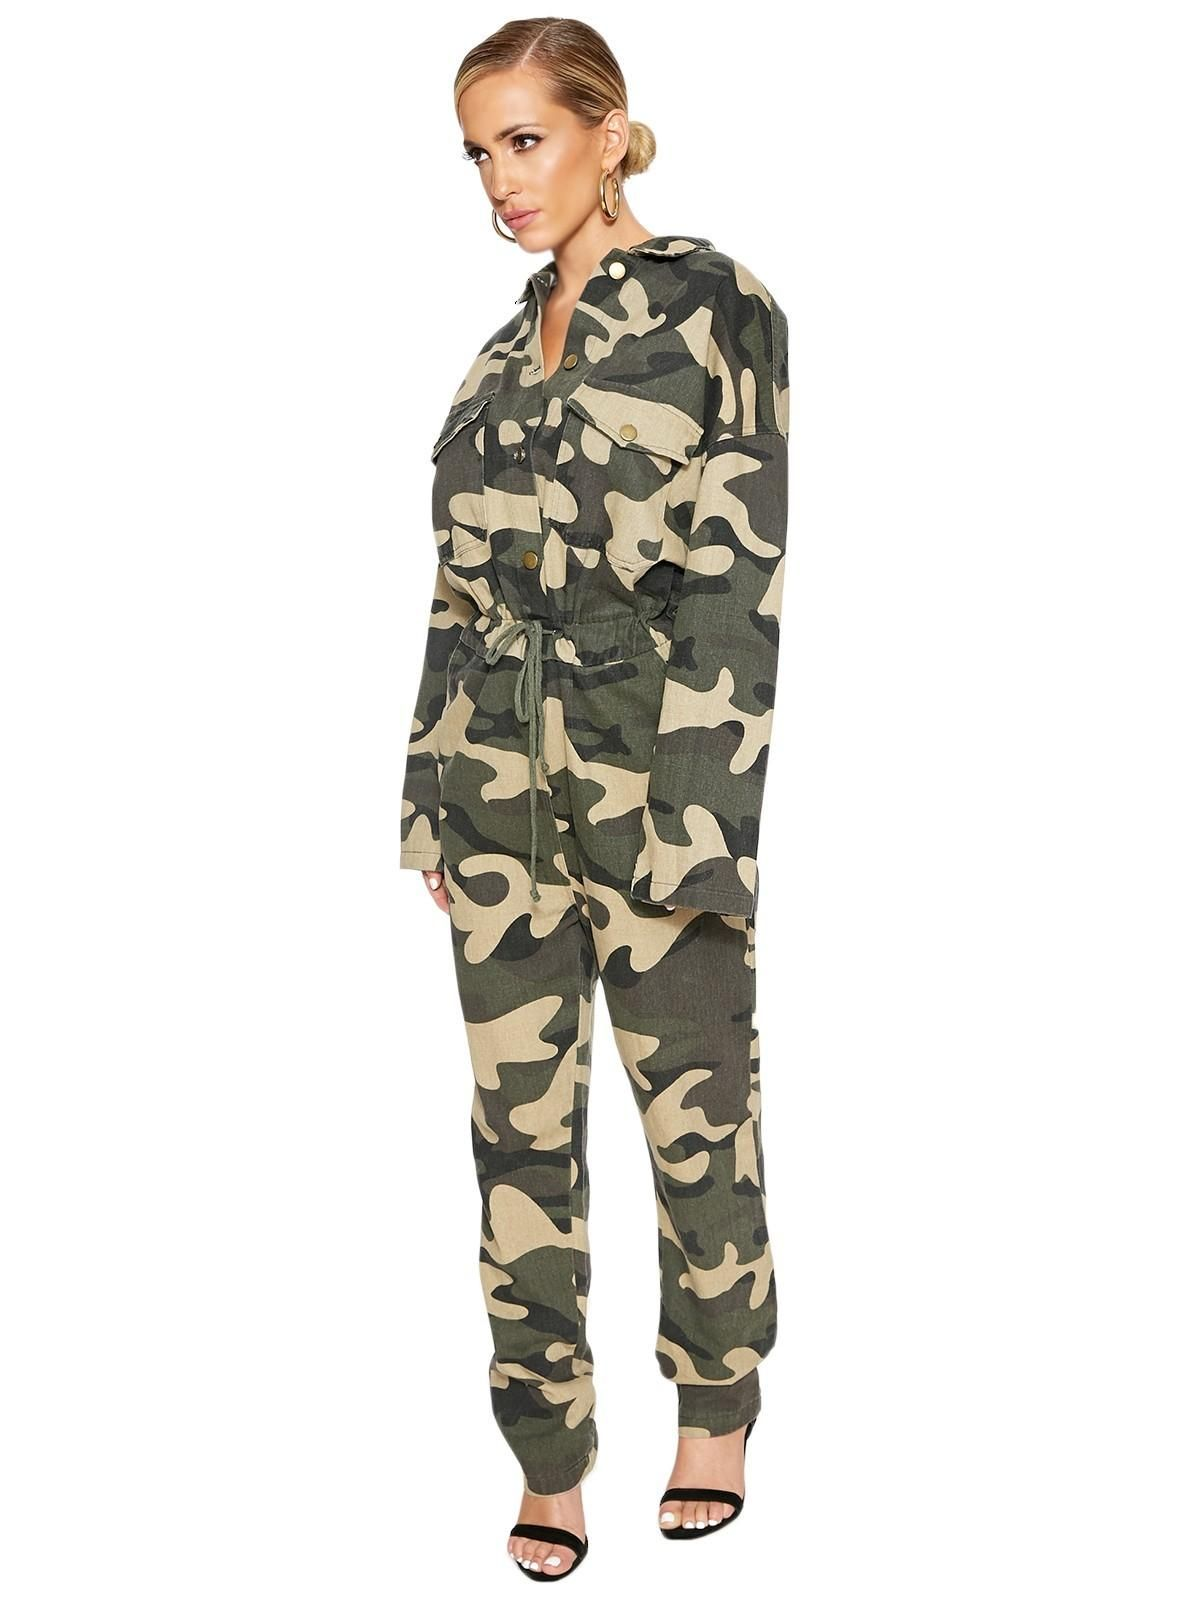 All Out Army Jumpsuit Jumpsuits Womens Clothes Shoes And Bags